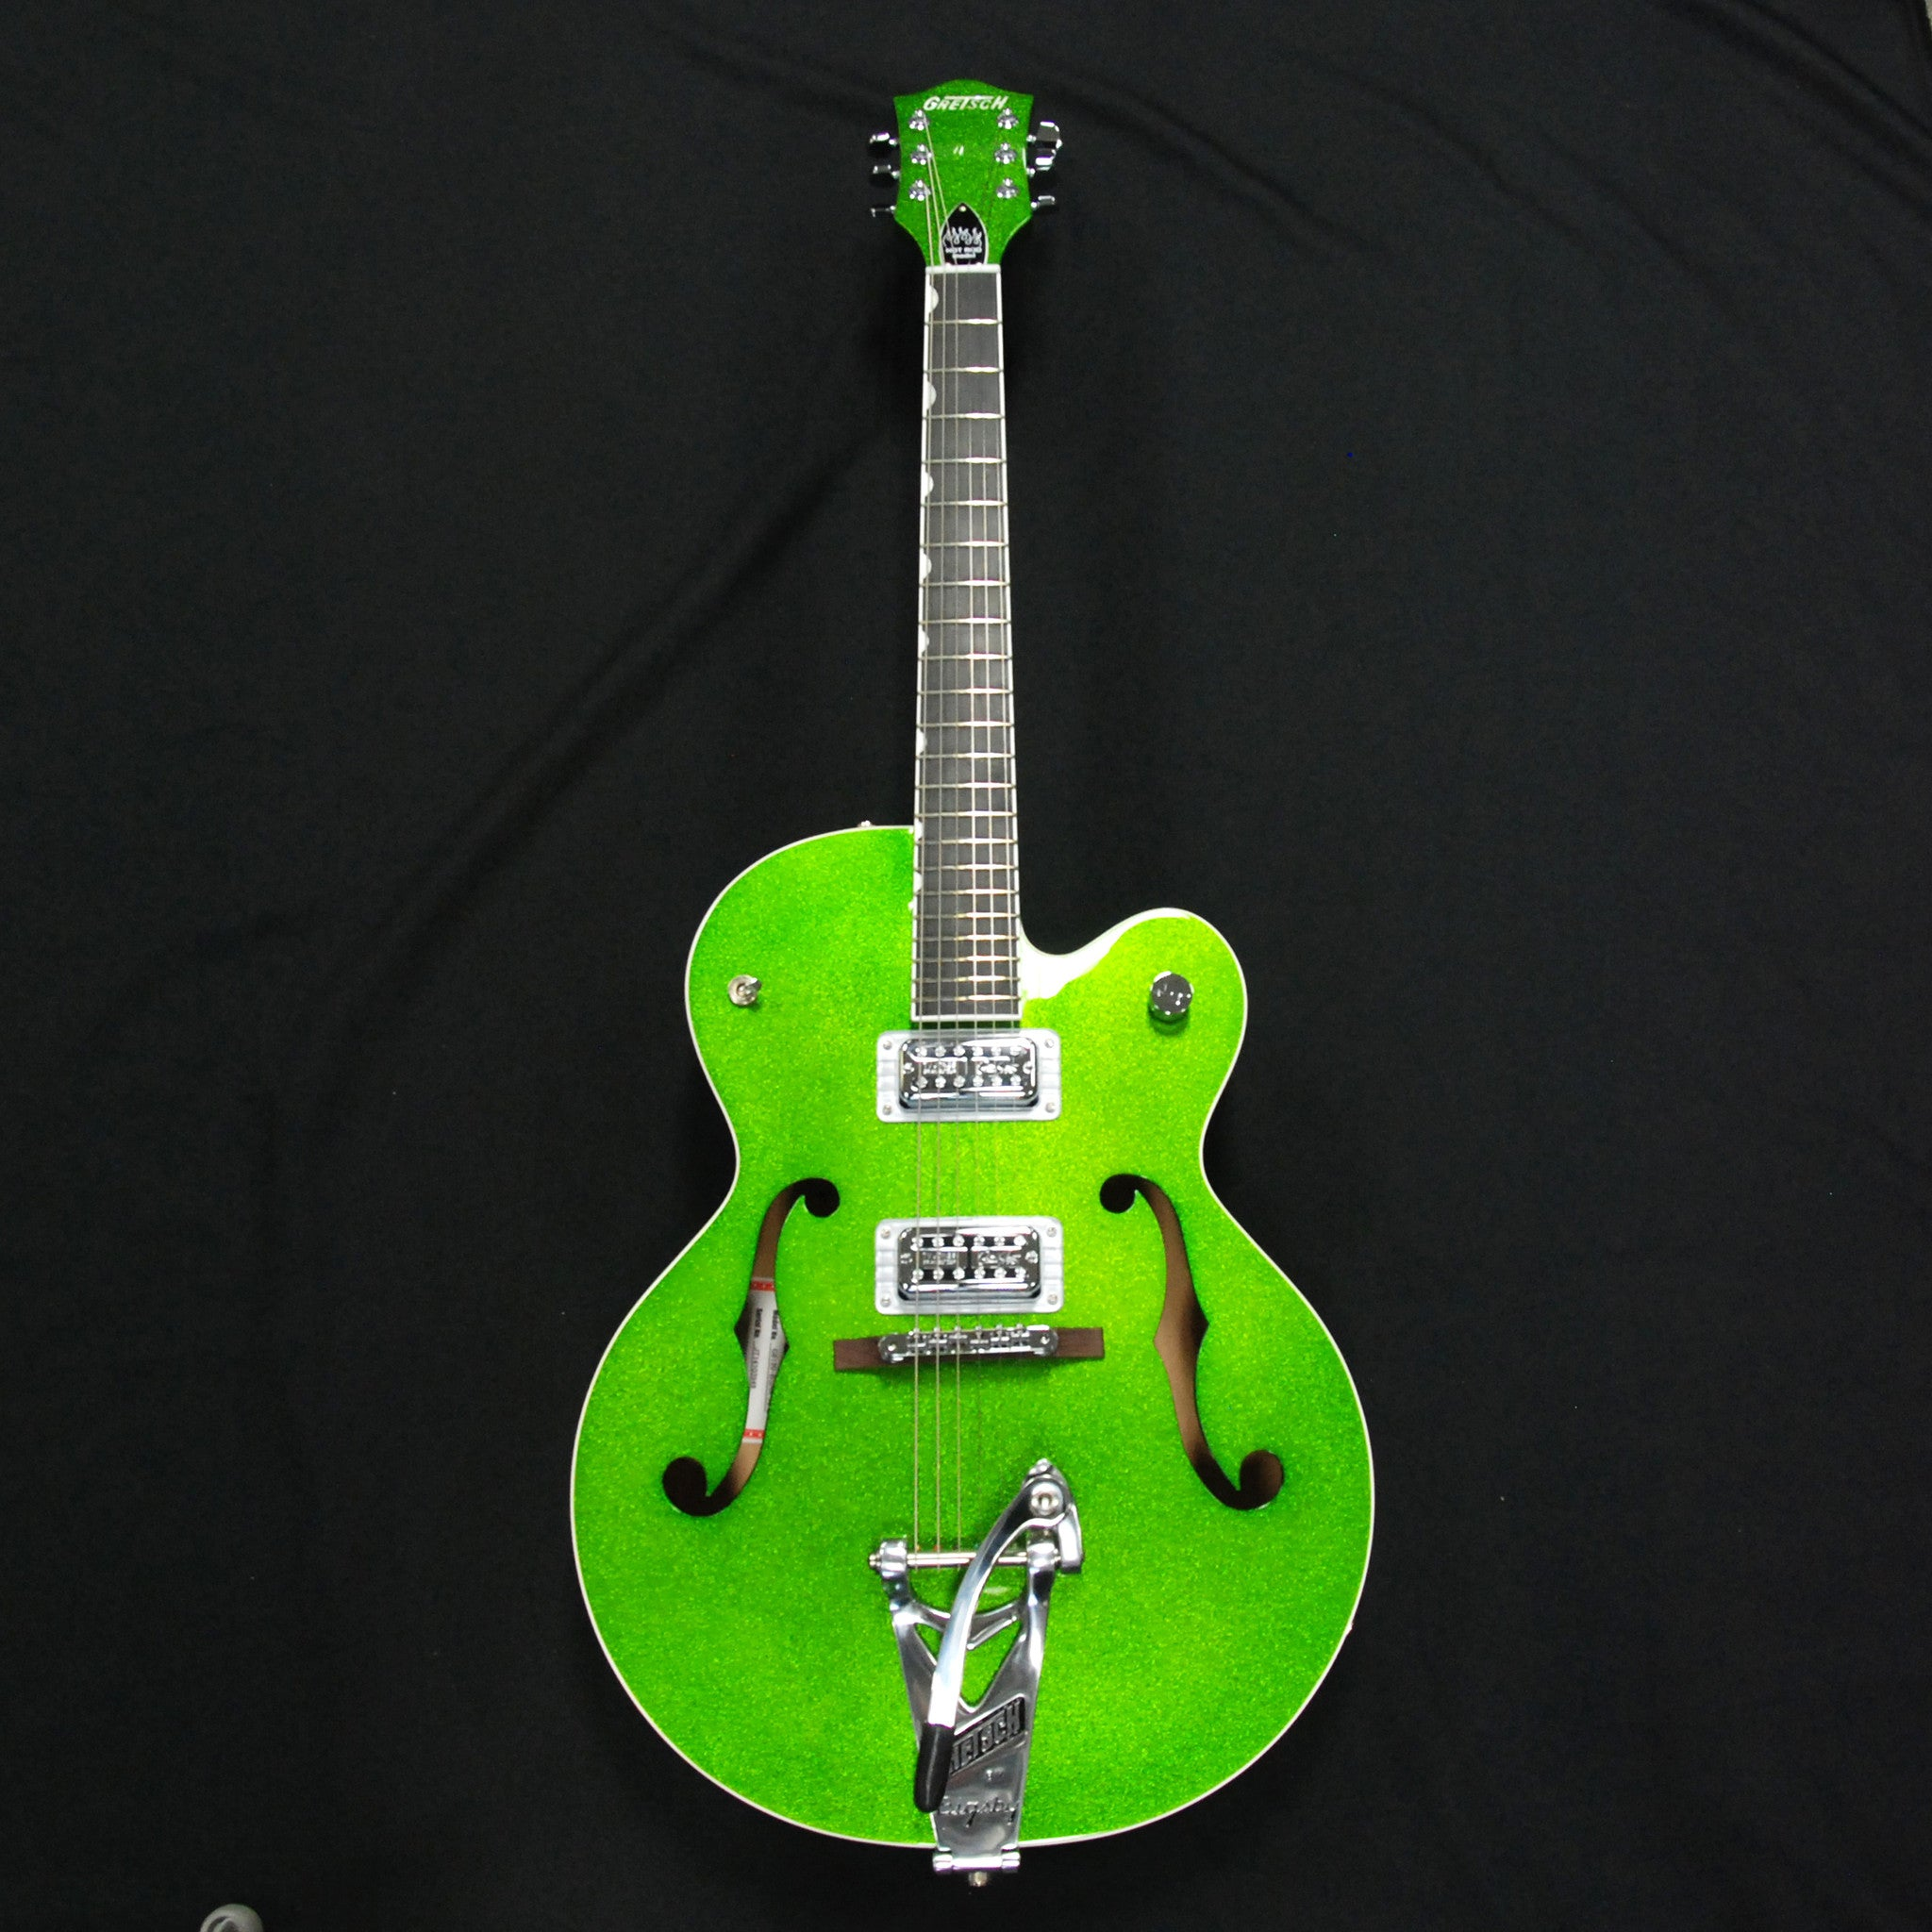 Gretsch G612osh Gspk Brian Setzer Hot Rod Green Sparkle Midlothian Schaller 3way Switch Wiring